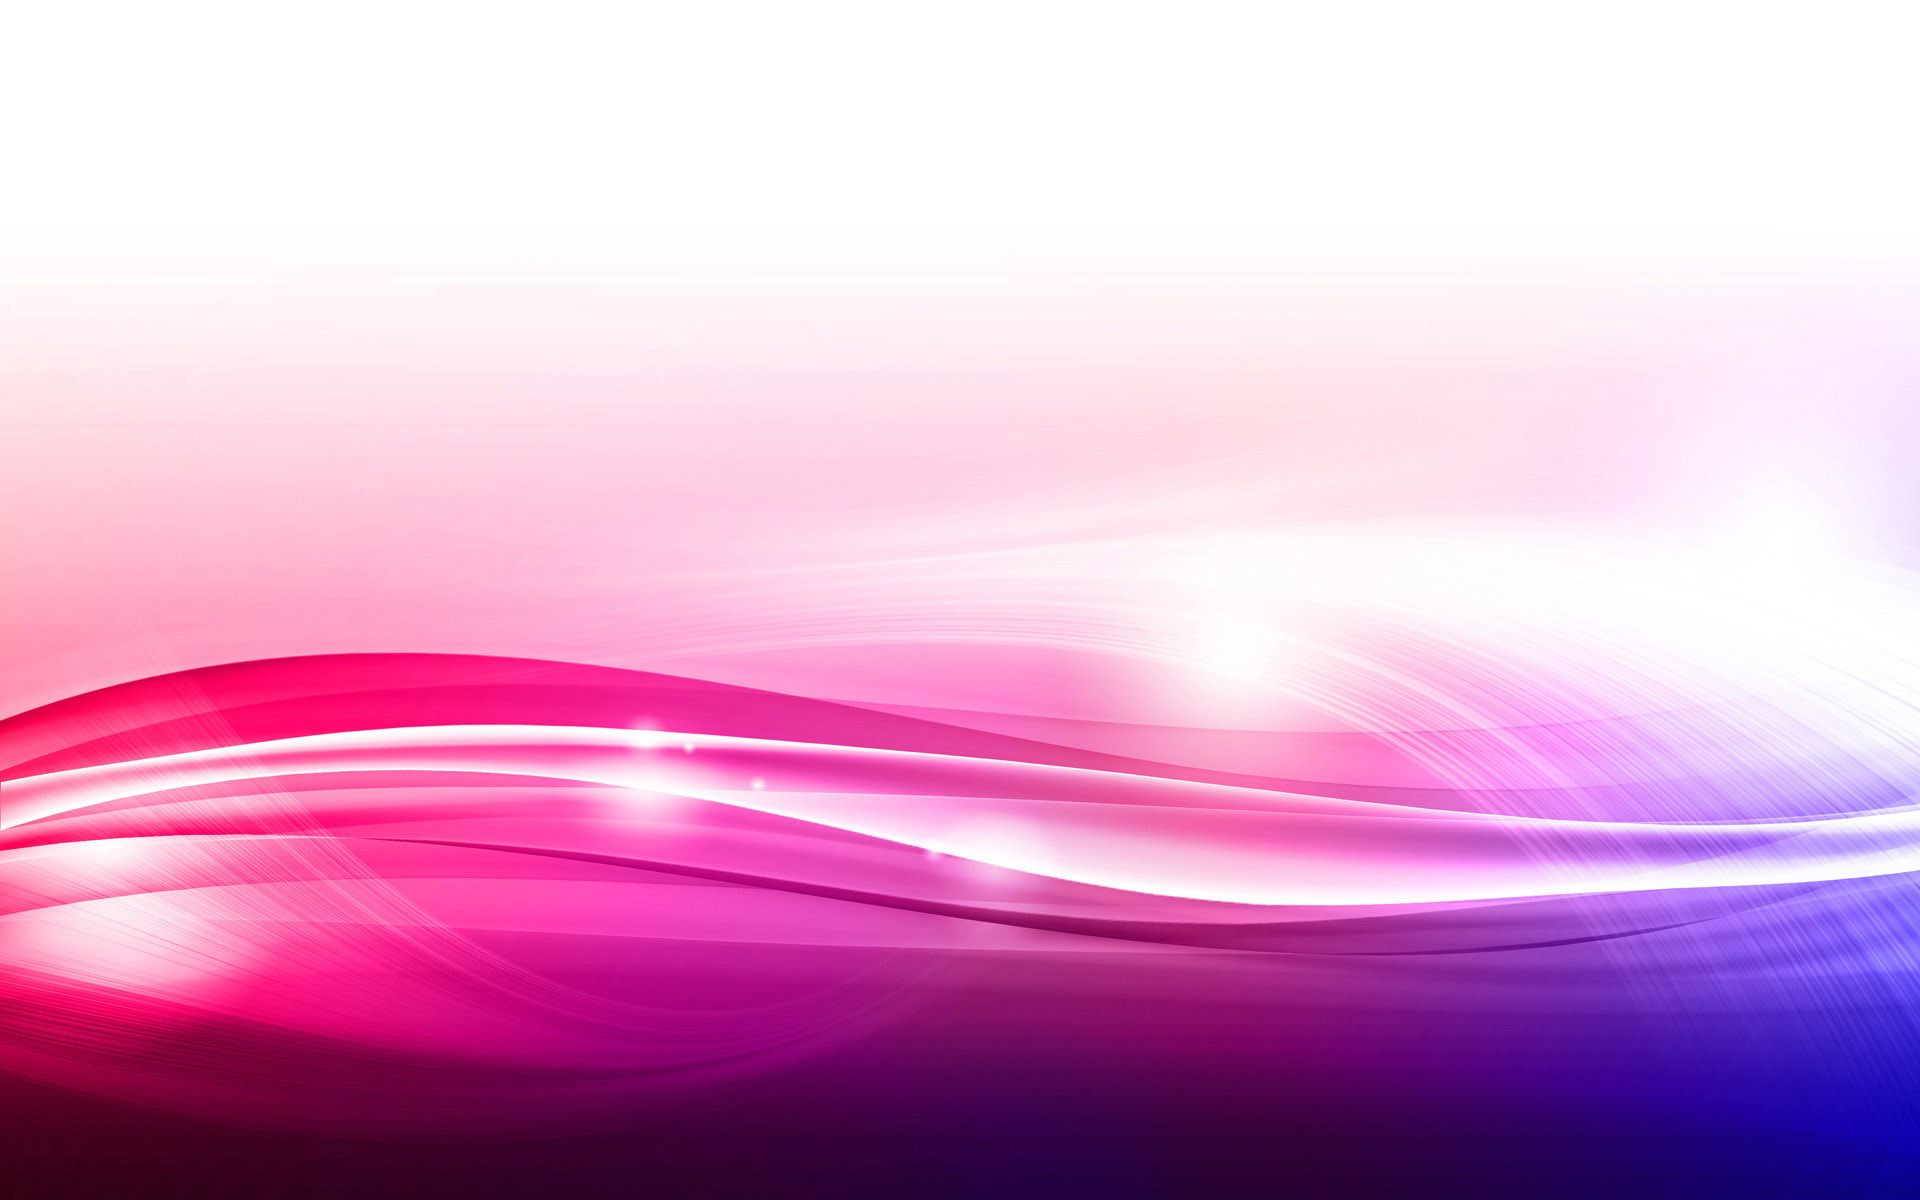 Pink And Blue Abstract Wallpapers Top Free Pink And Blue Abstract Backgrounds Wallpaperaccess